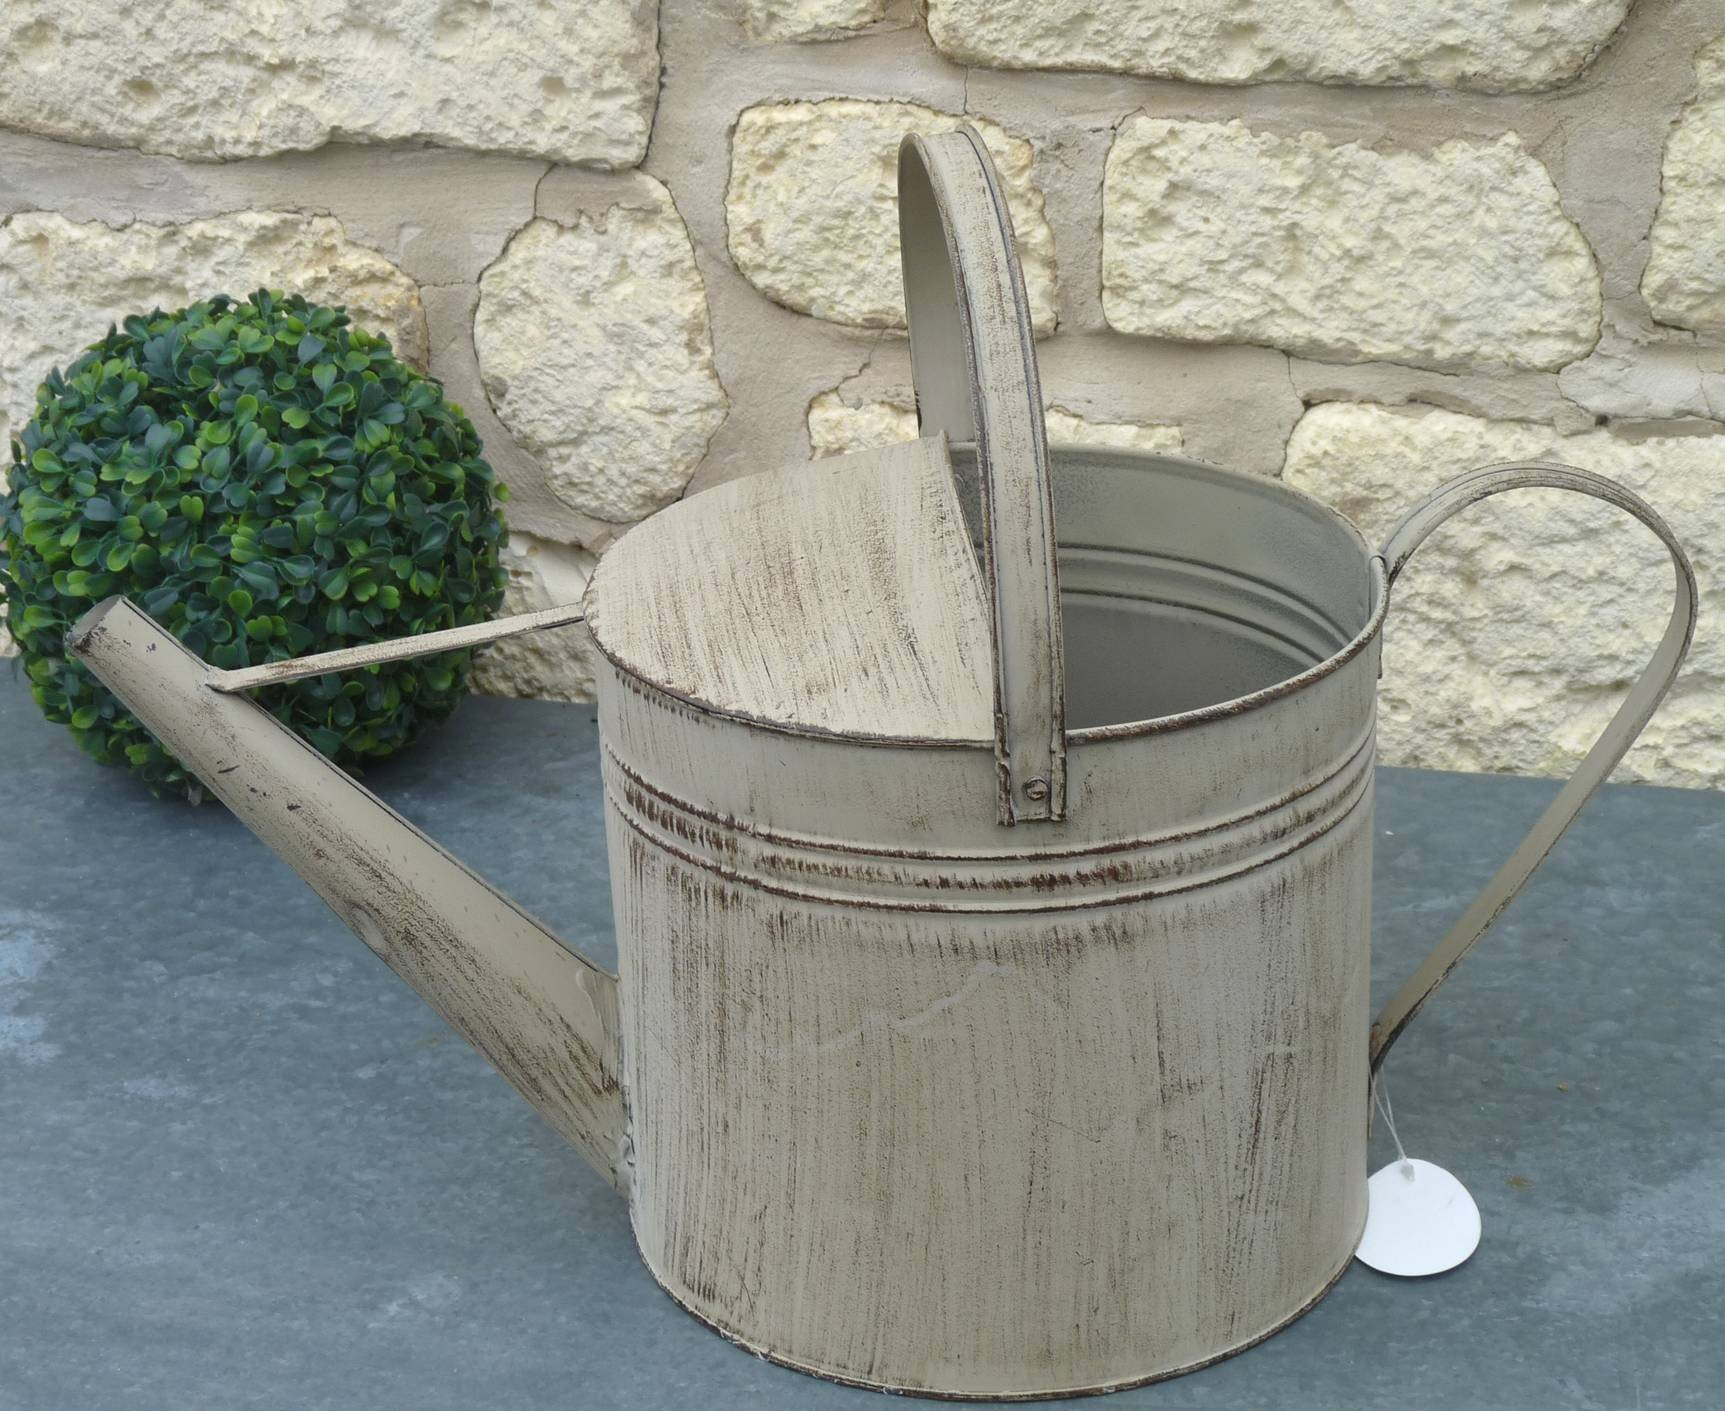 Arrosoir Cache Pot Décoratif ou Broc Porte Jardini¨re Fonctionnel